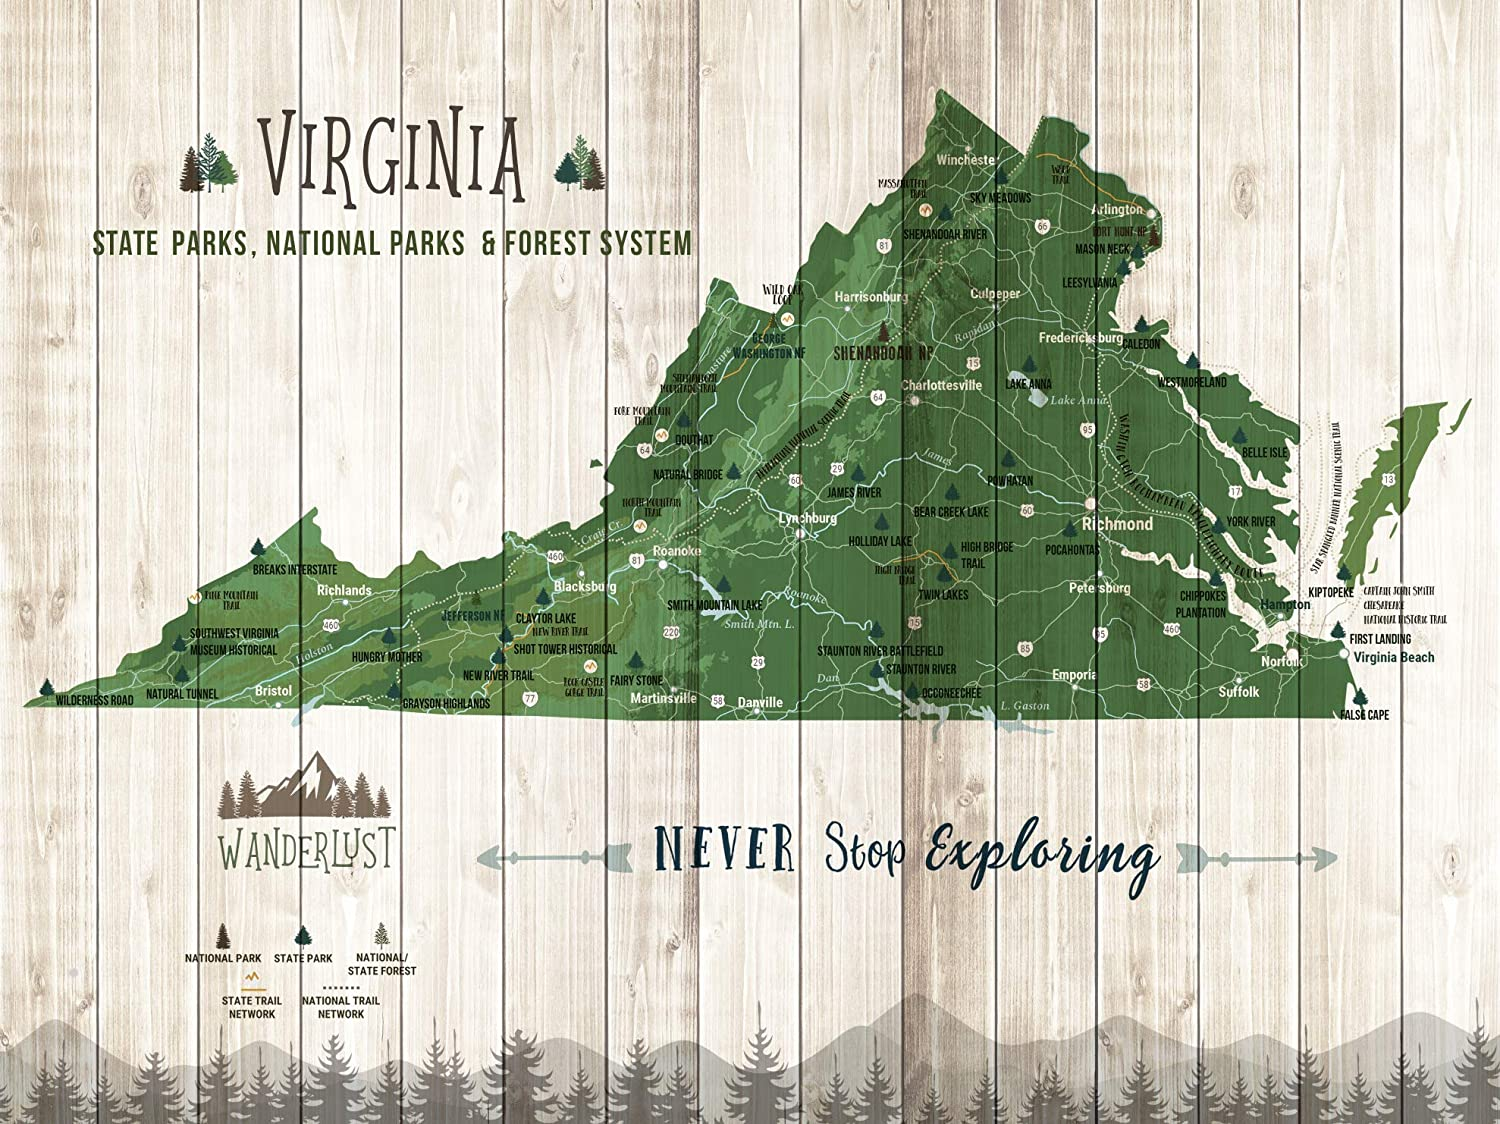 Map Of Virginia State Parks Amazon.com: Virginia State Parks, State Parks of Virginia, Push